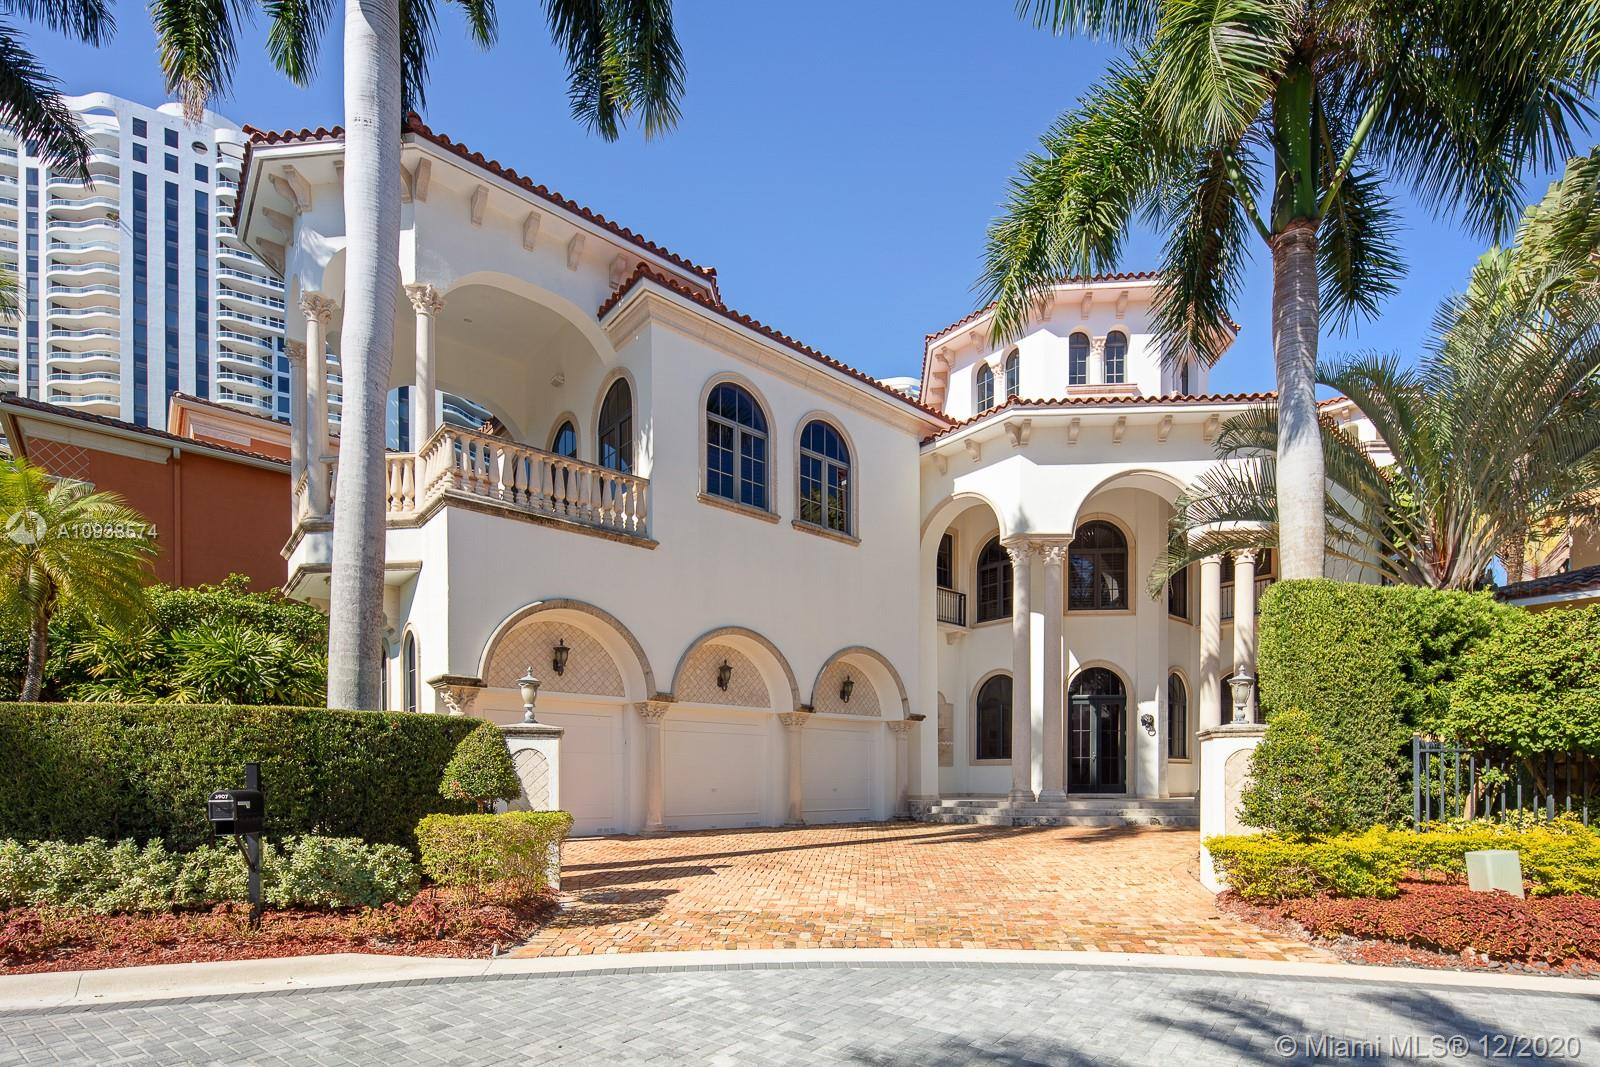 Welcome to the grandest of Island Estates homes. Professionally designed, 5 beds / 5.5 baths with 40' ceiling, impressive grand staircase, magnificent cinema! Extra large game / family room, 600 gallon saltwater aquarium, huge patio, infinity edge pool & elevator.